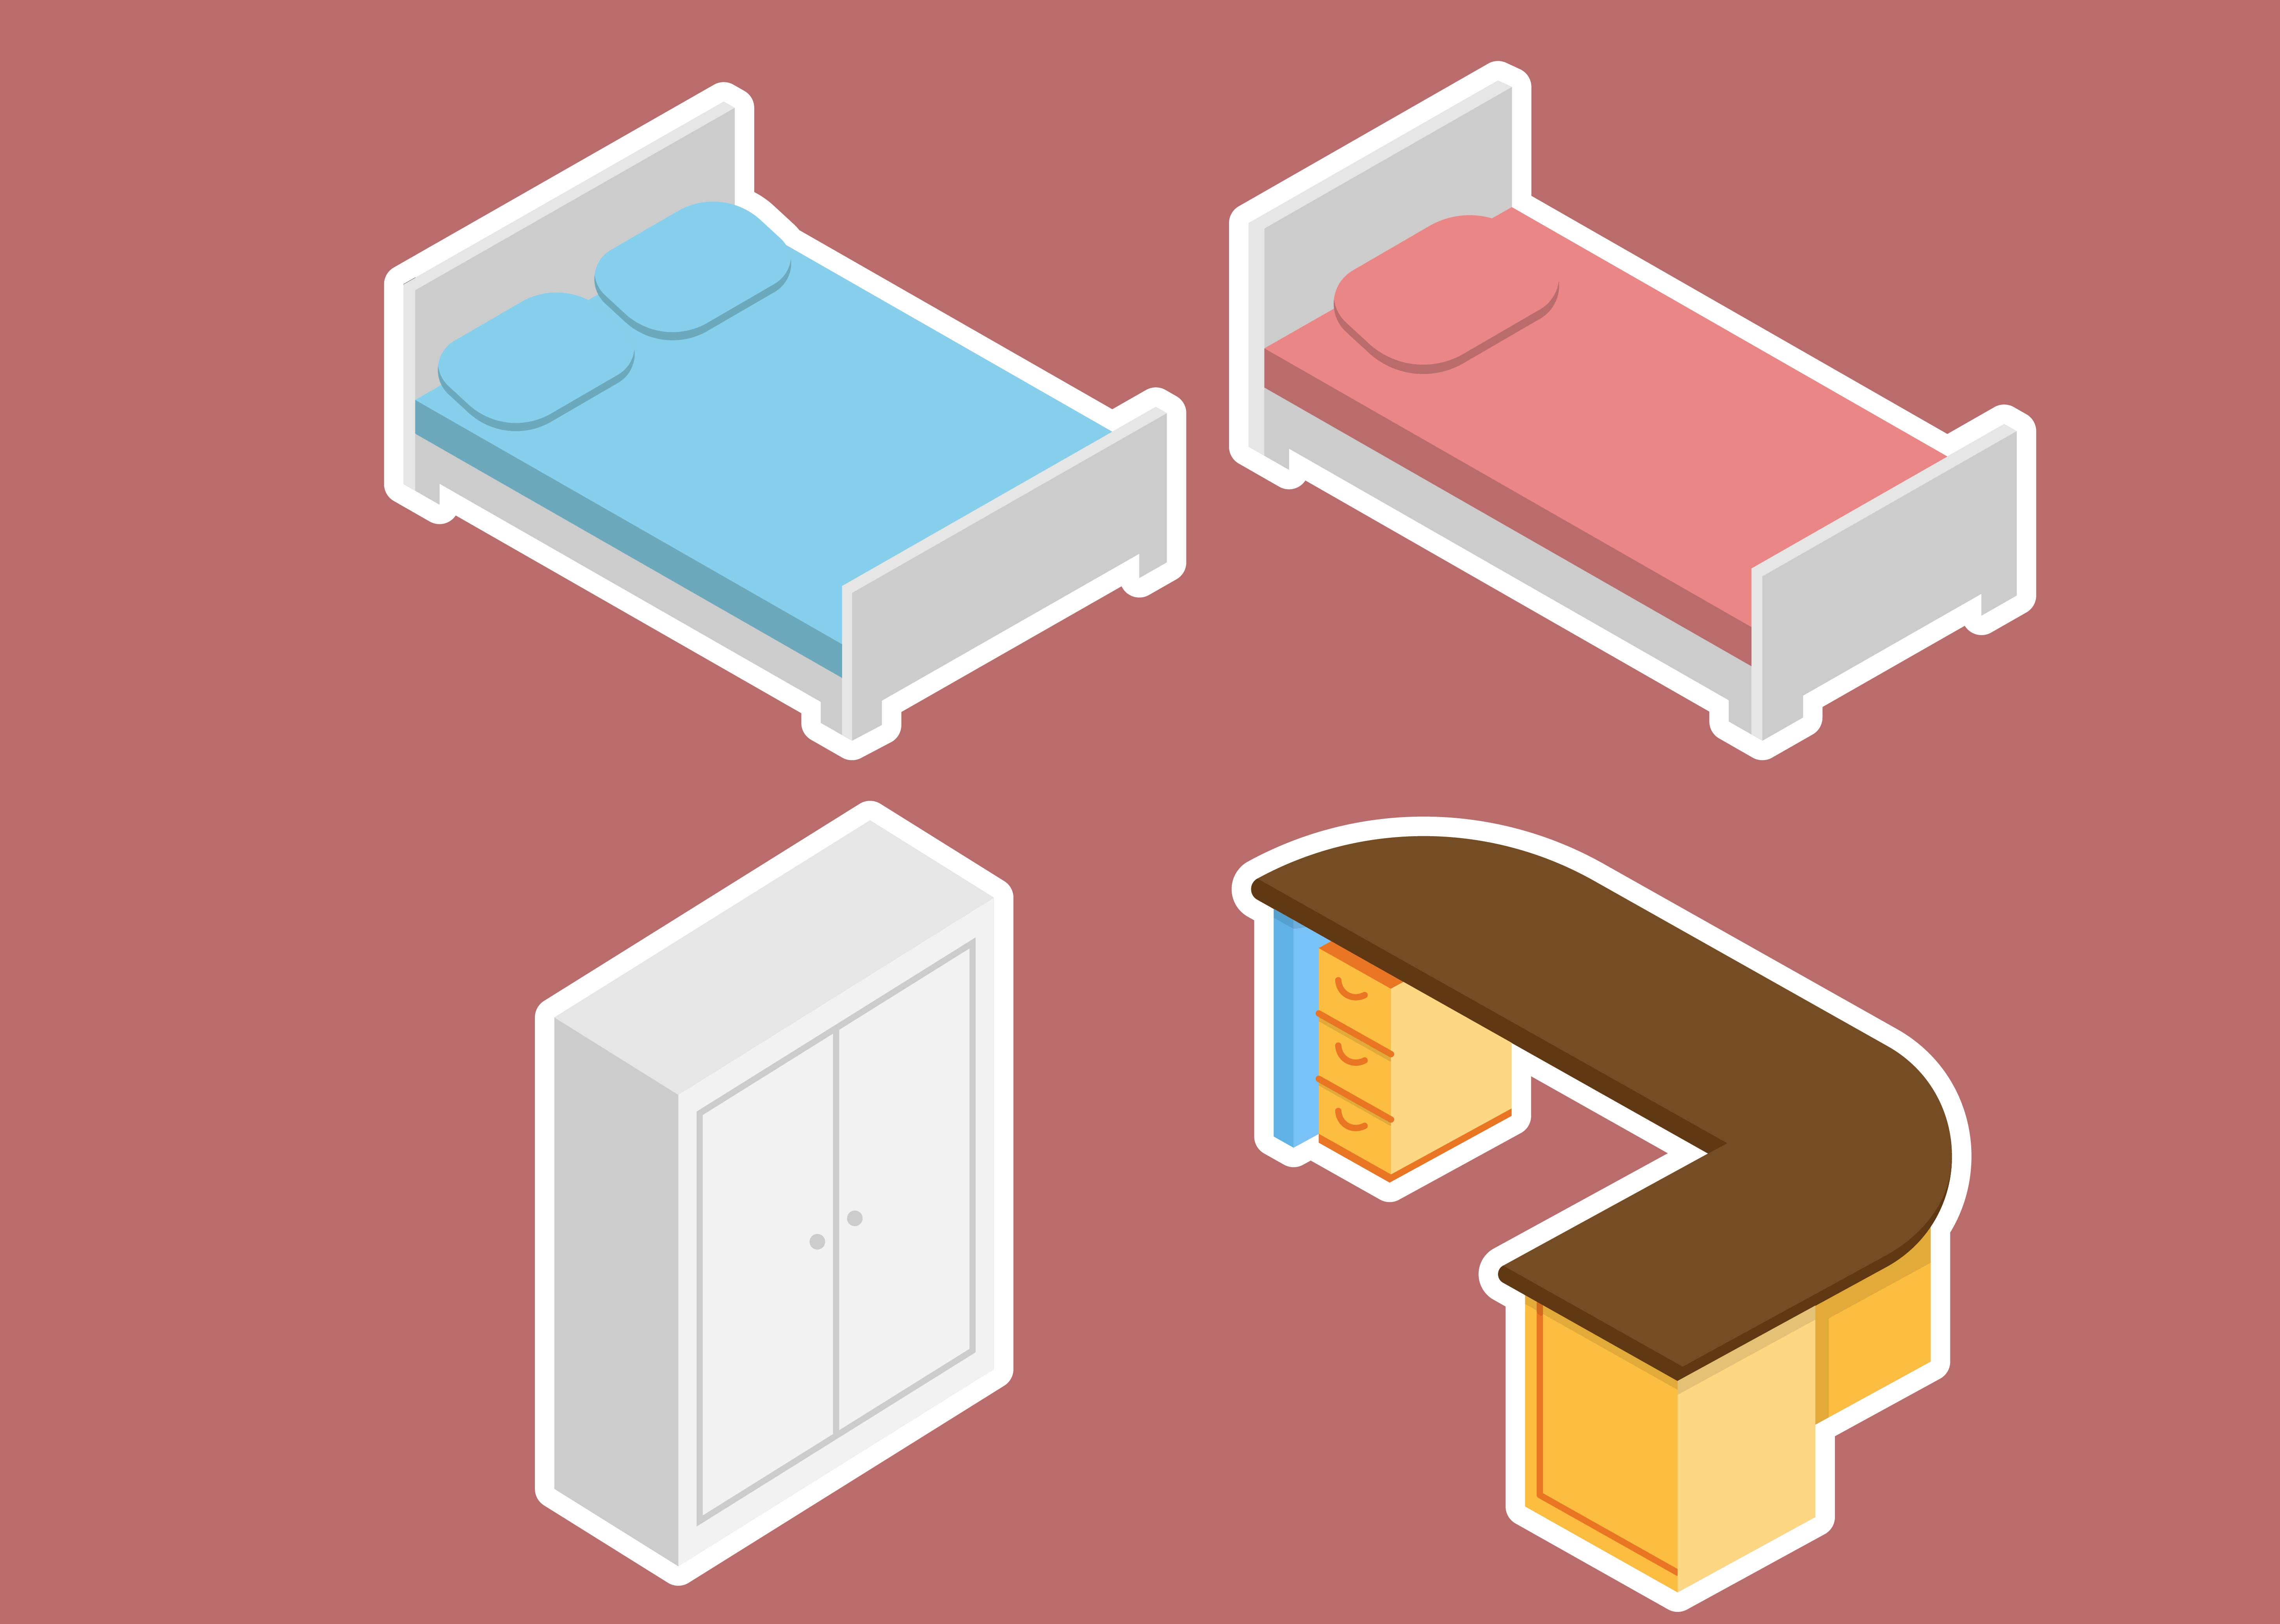 Download Free Isometric Furniture Graphic By Studioisamu Creative Fabrica for Cricut Explore, Silhouette and other cutting machines.